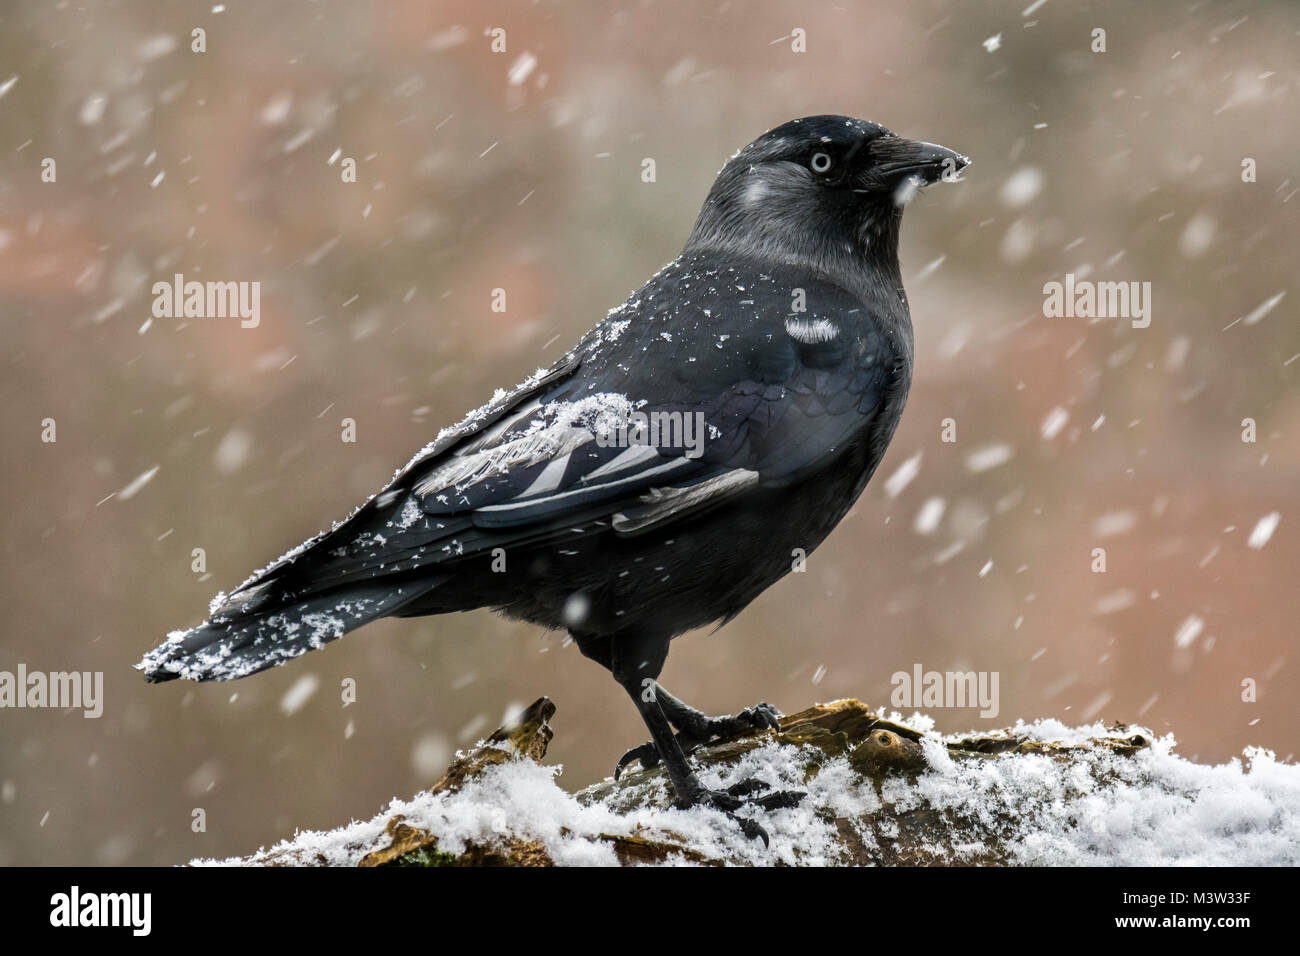 Leucistic Western jackdaw / European jackdaw (Corvus monedula / Coloeus monedula) during snow shower in winter - Stock Image